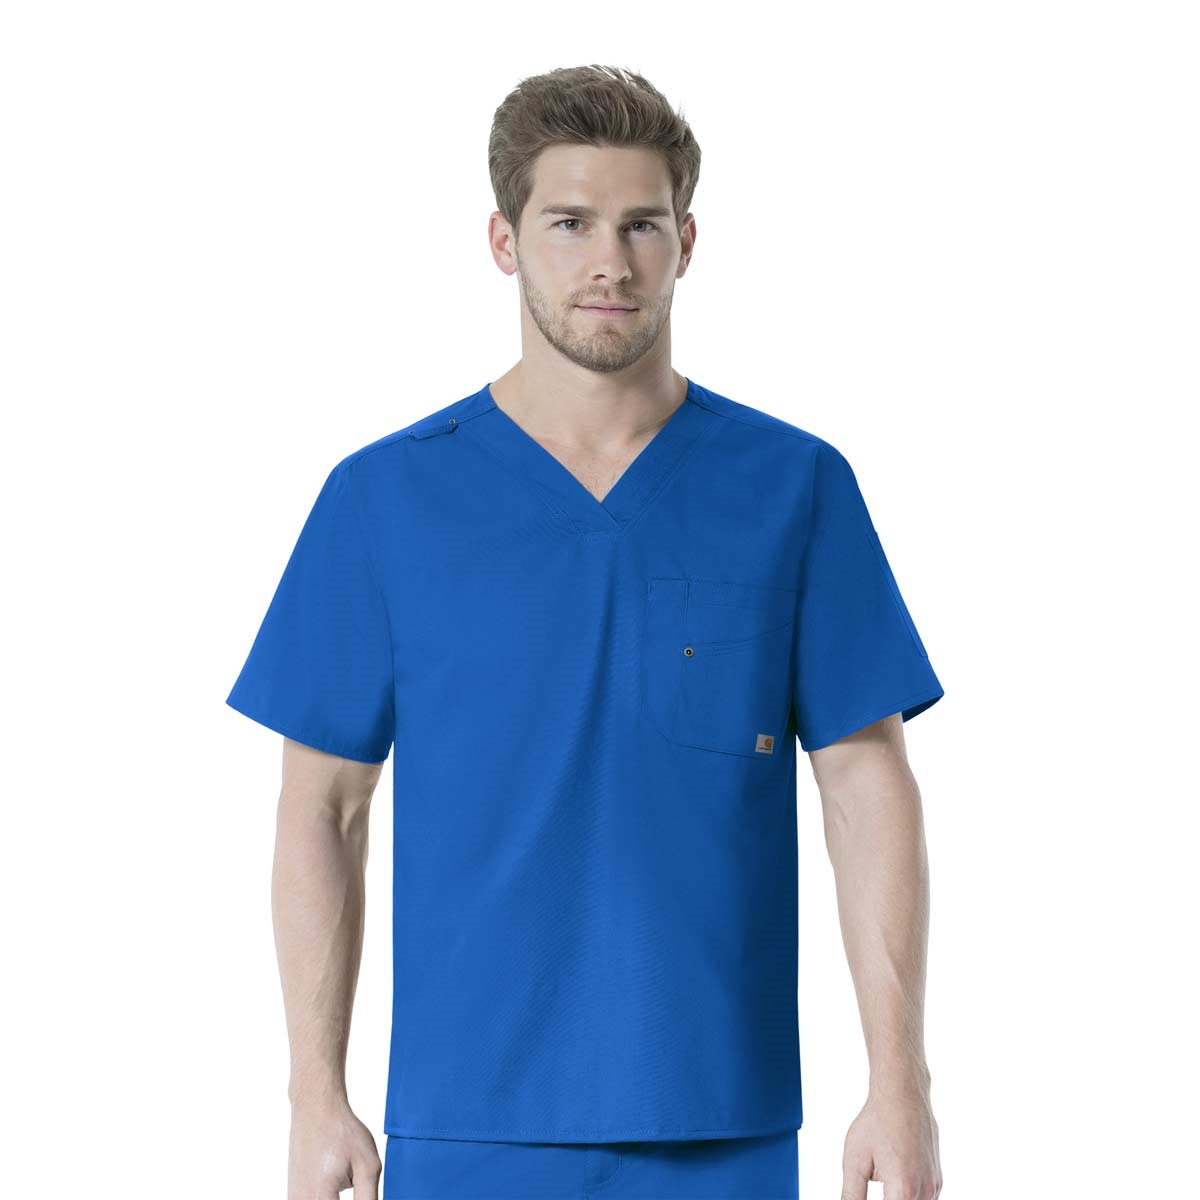 b1b2be2e7fe2c WonderWink Scrubs | Professional Scrub Tops for Men